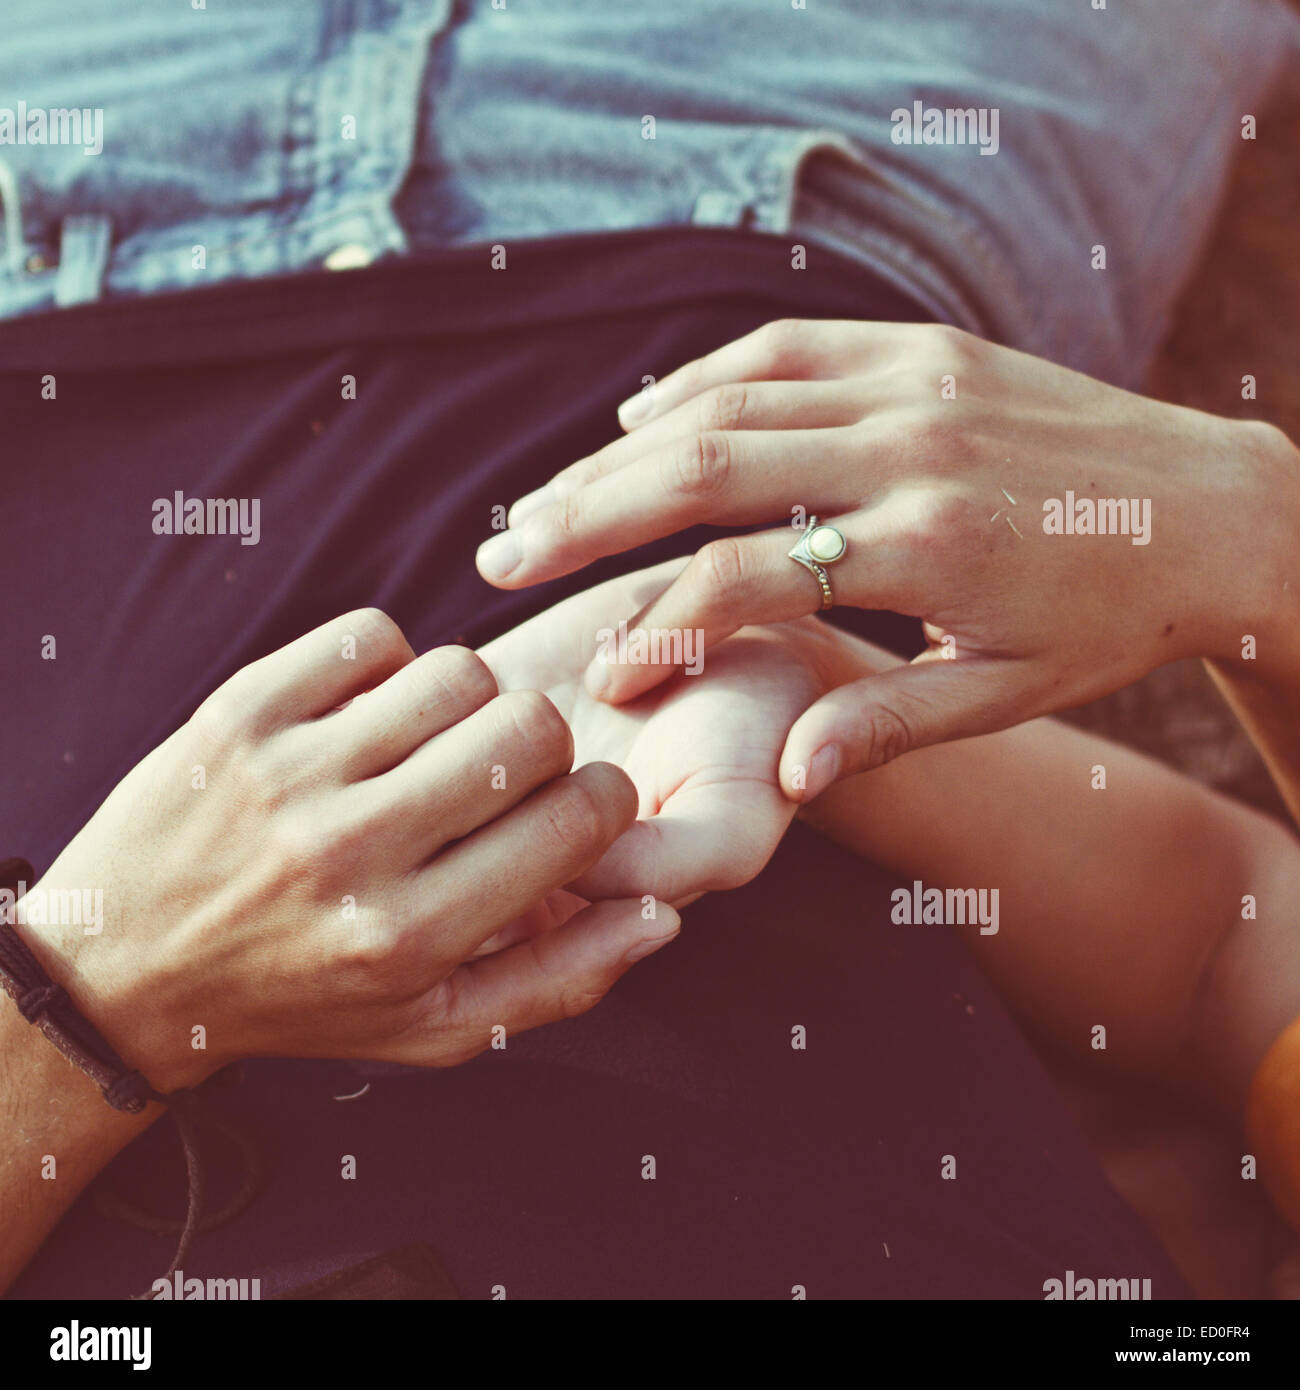 Close-up of woman touching a man's hand - Stock Image